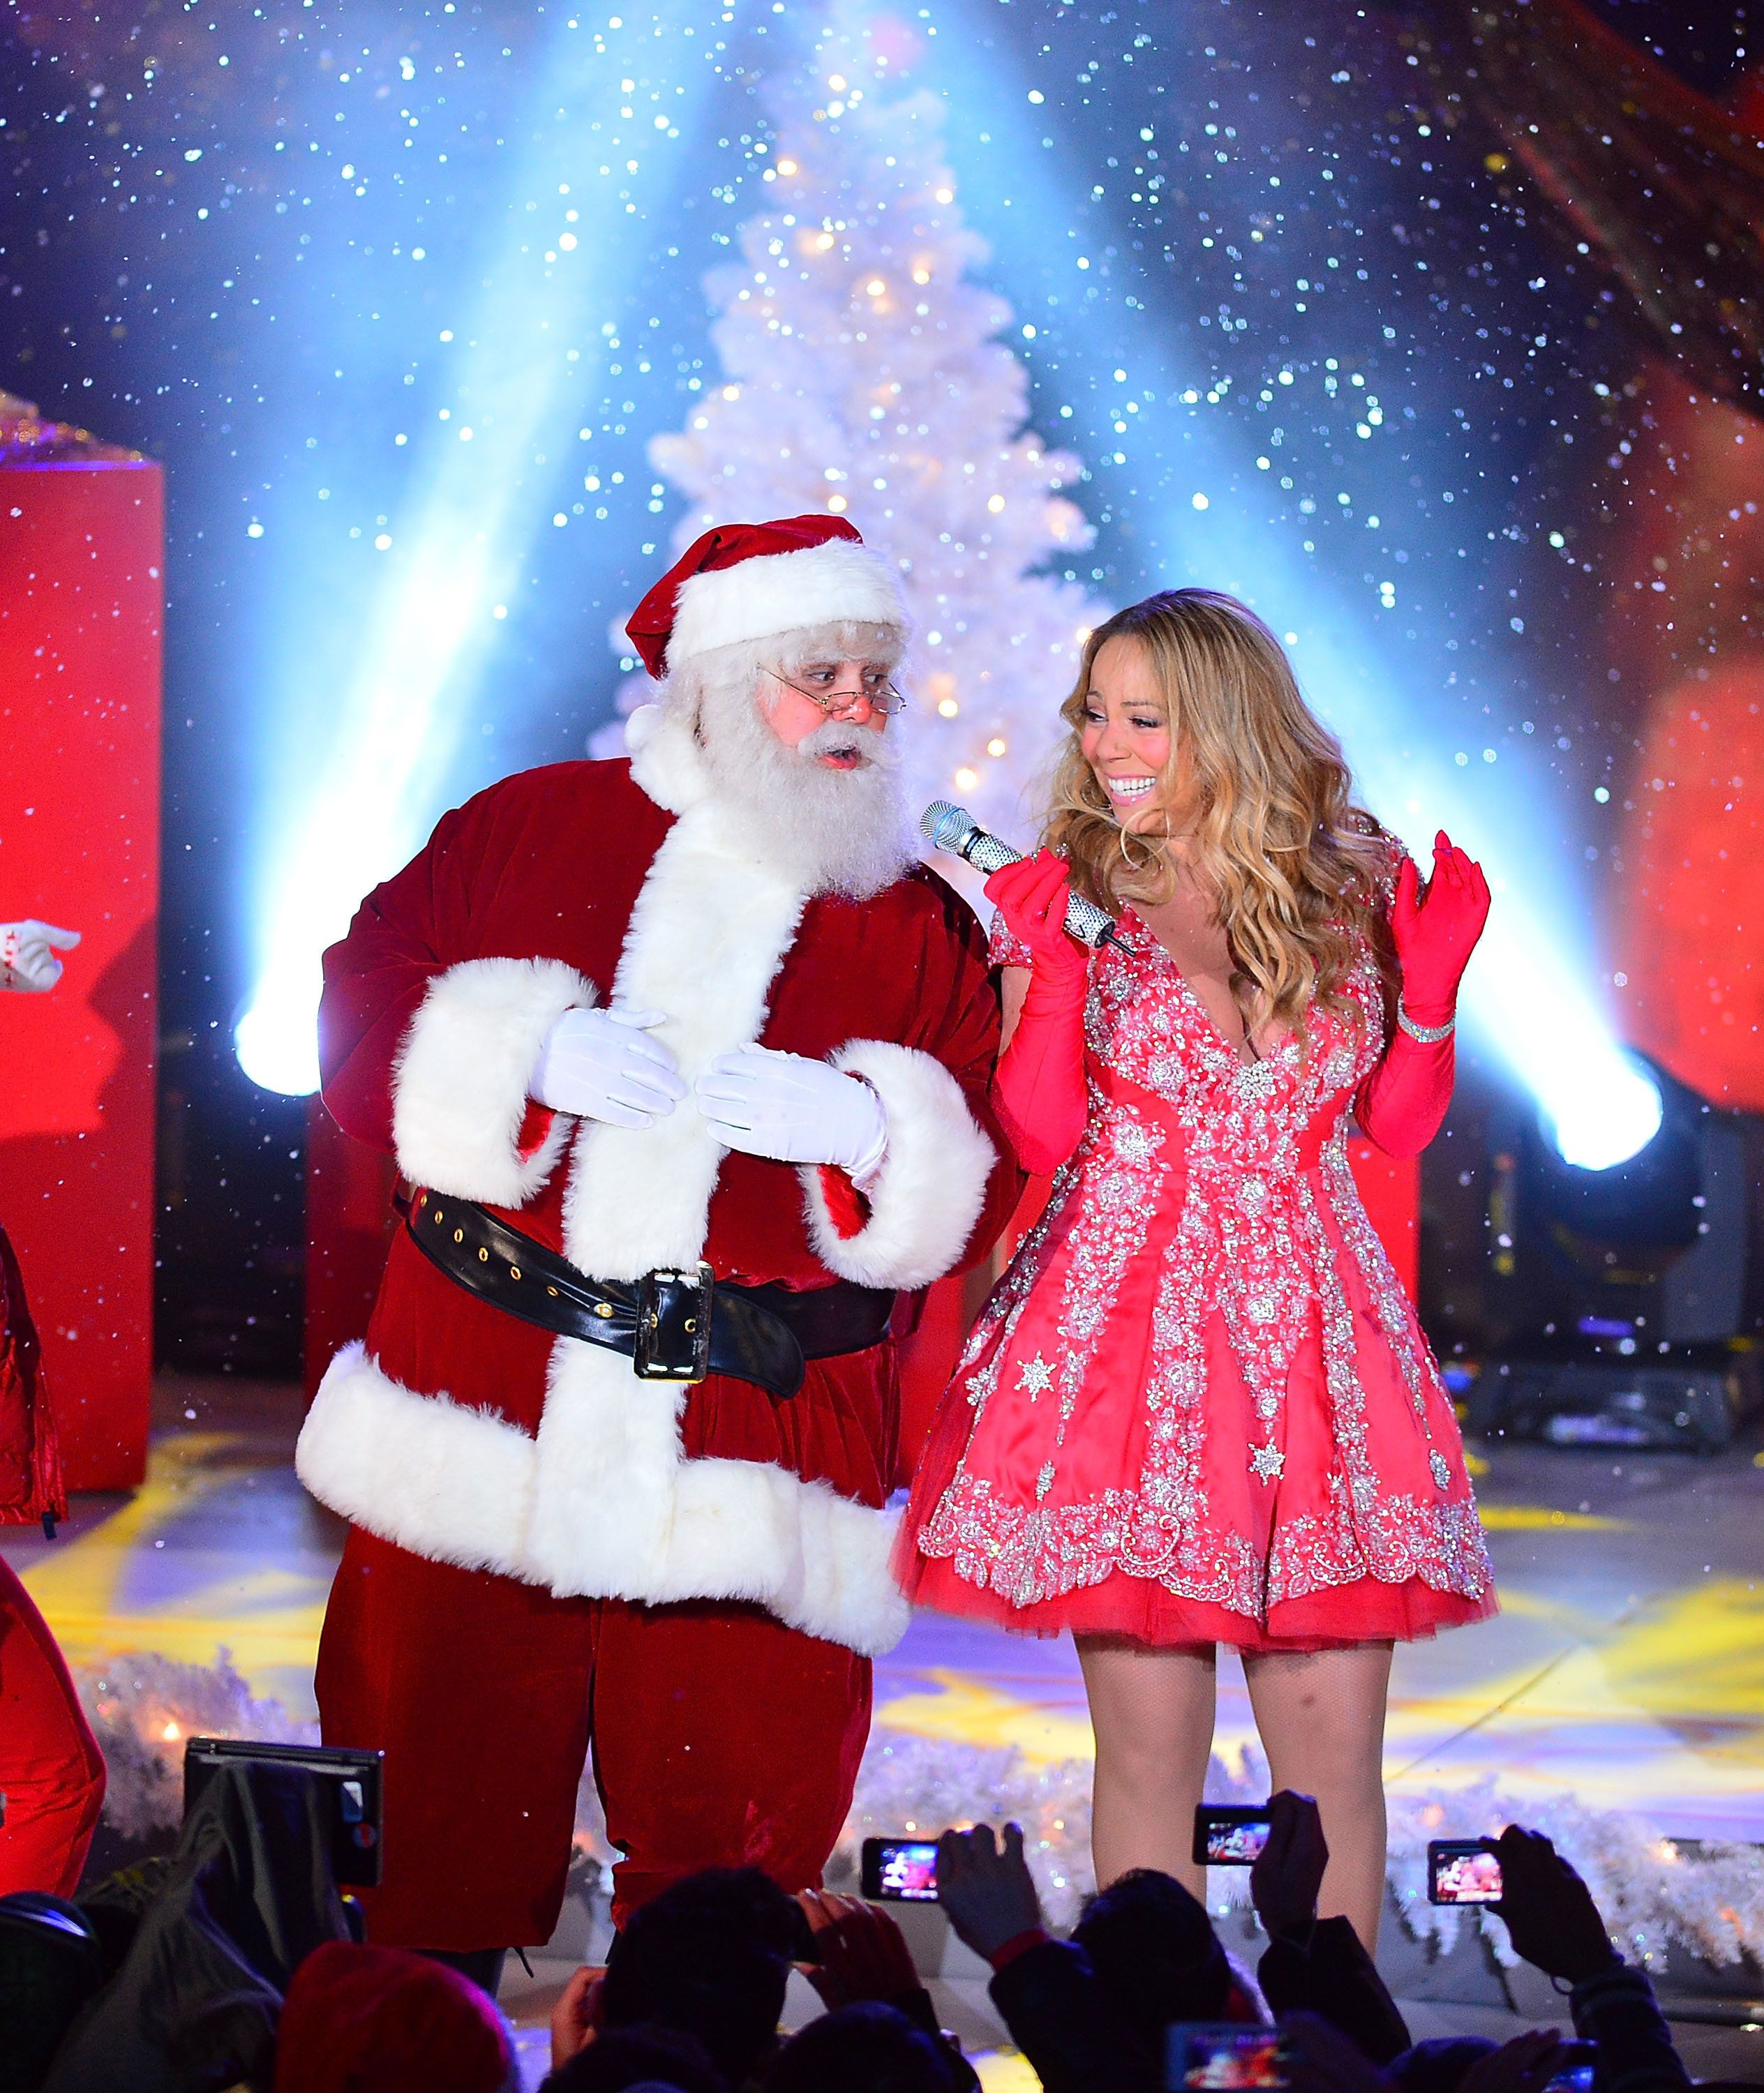 Mariah Carey's Christmas Movie Looks Like It Could Be One Of The ...